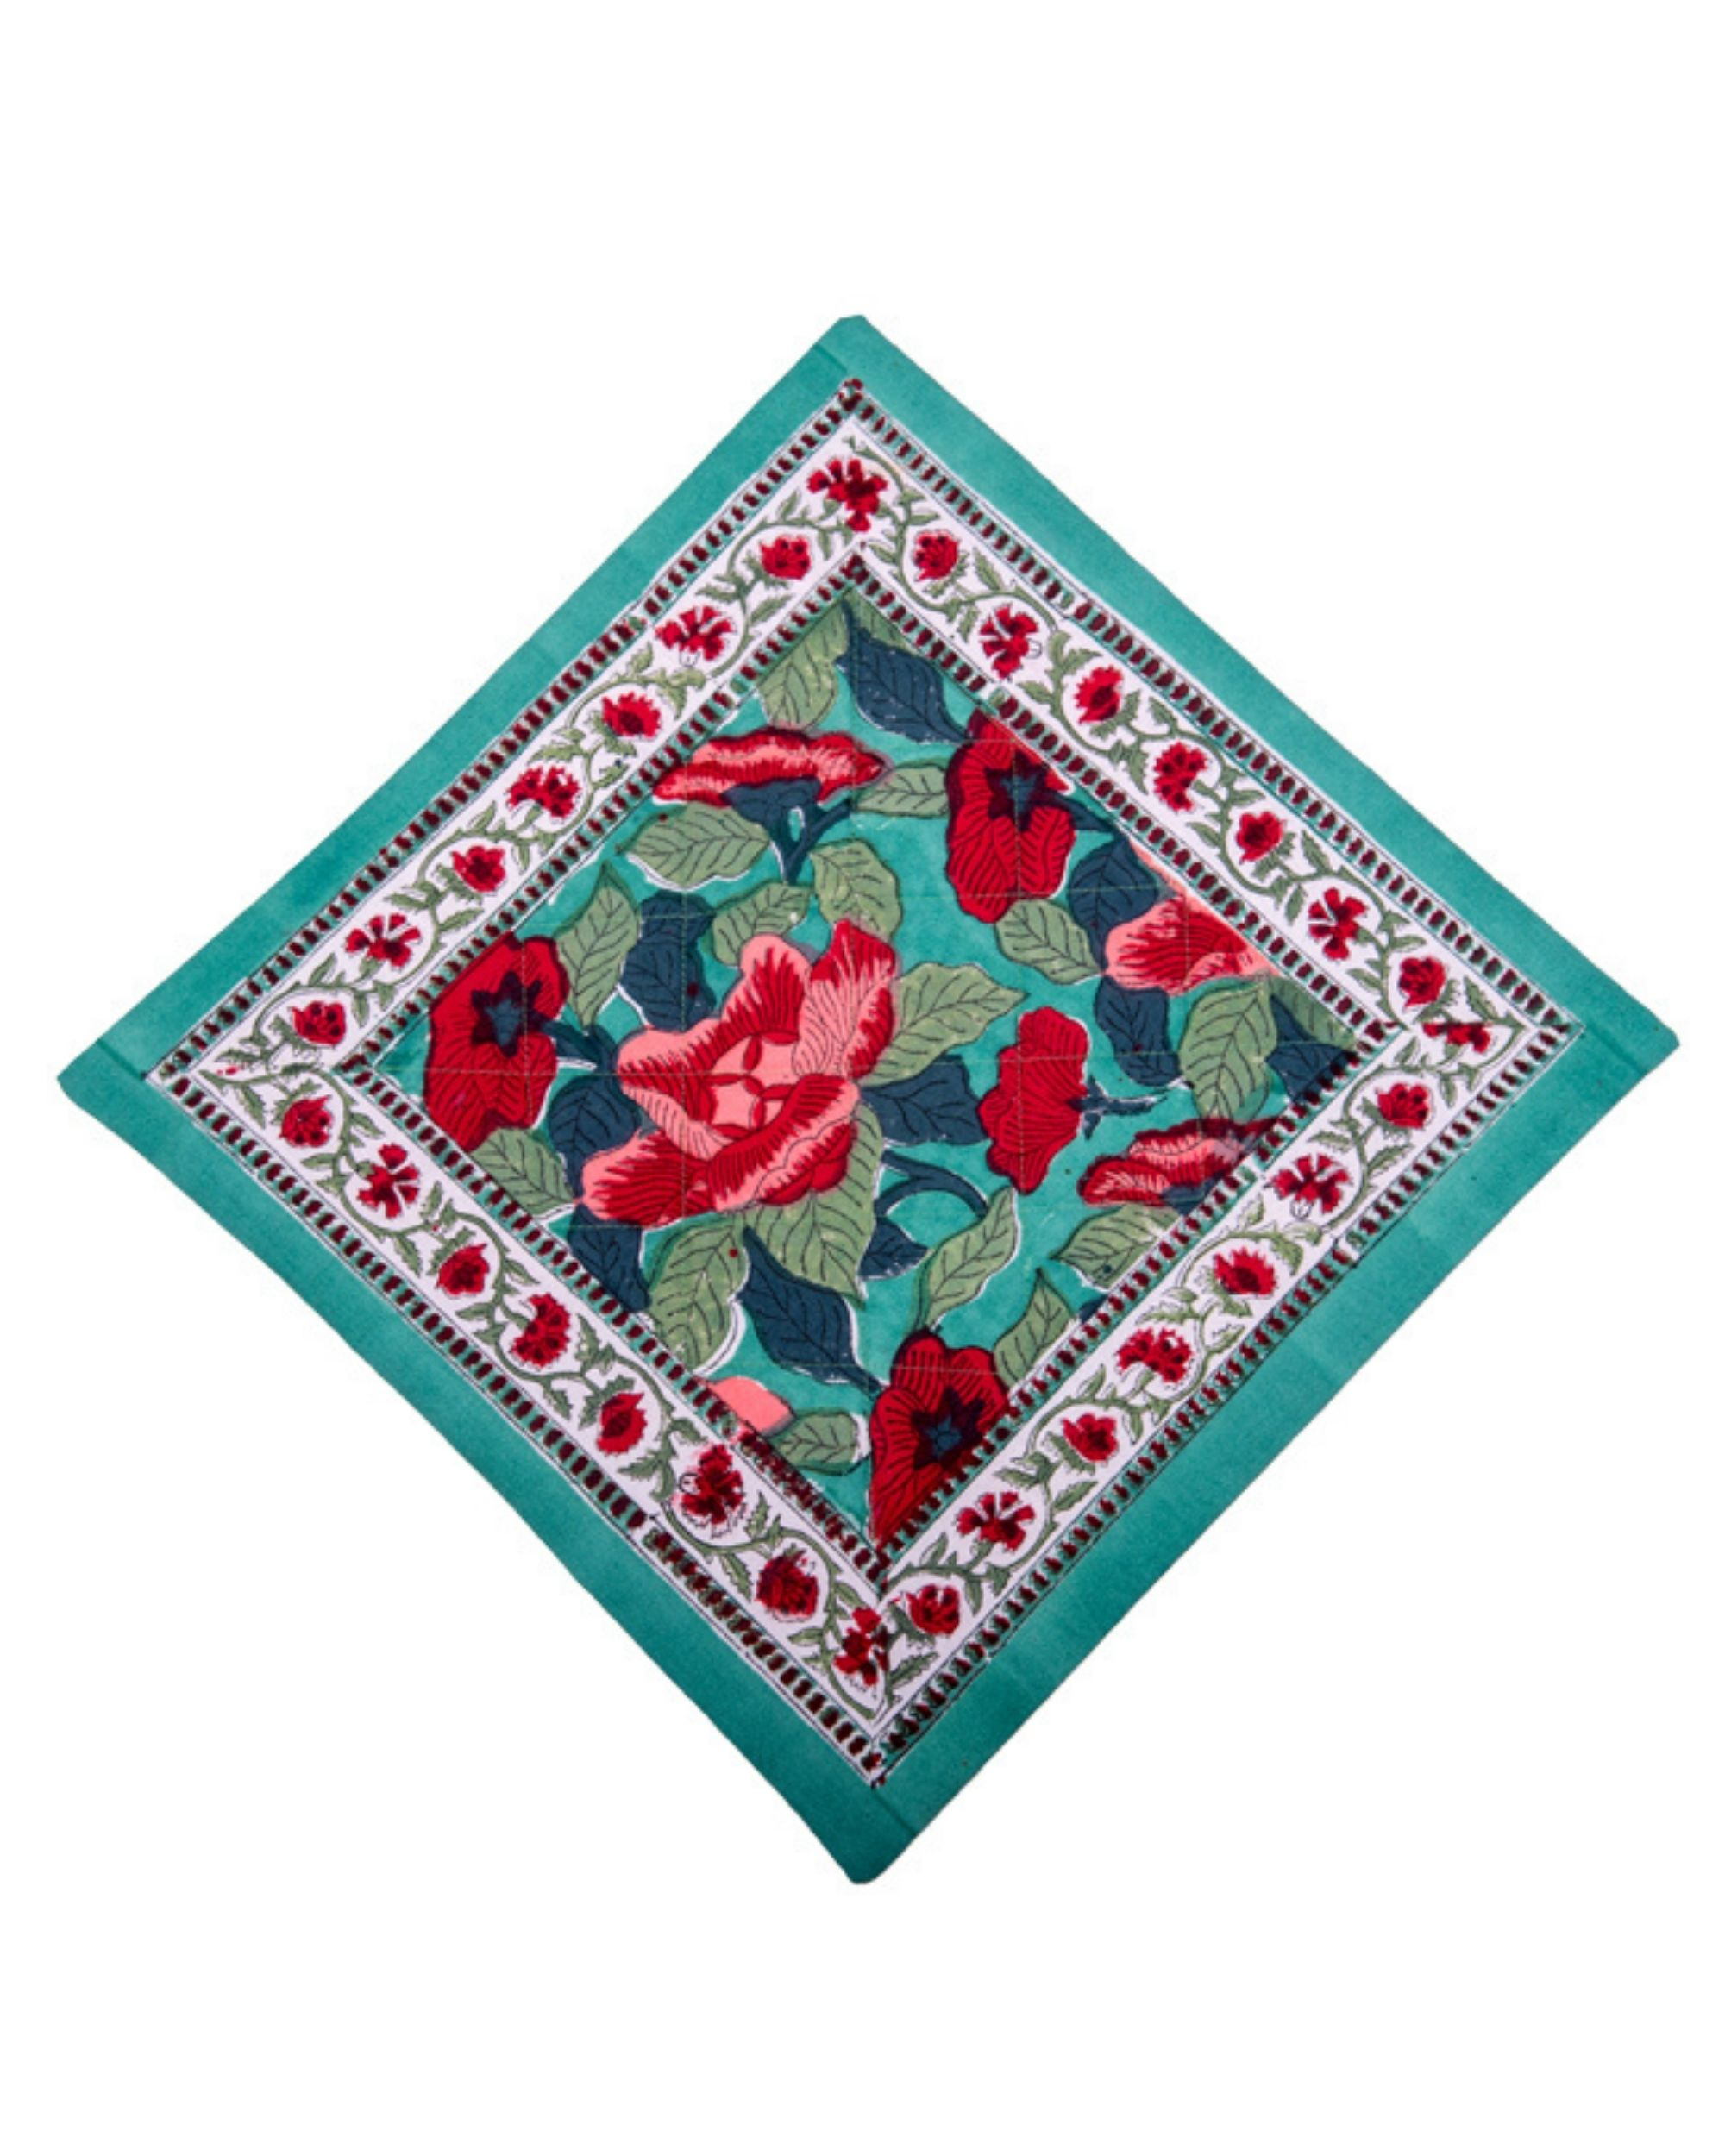 Green and red floral printed quilted cushion covers - set of 2